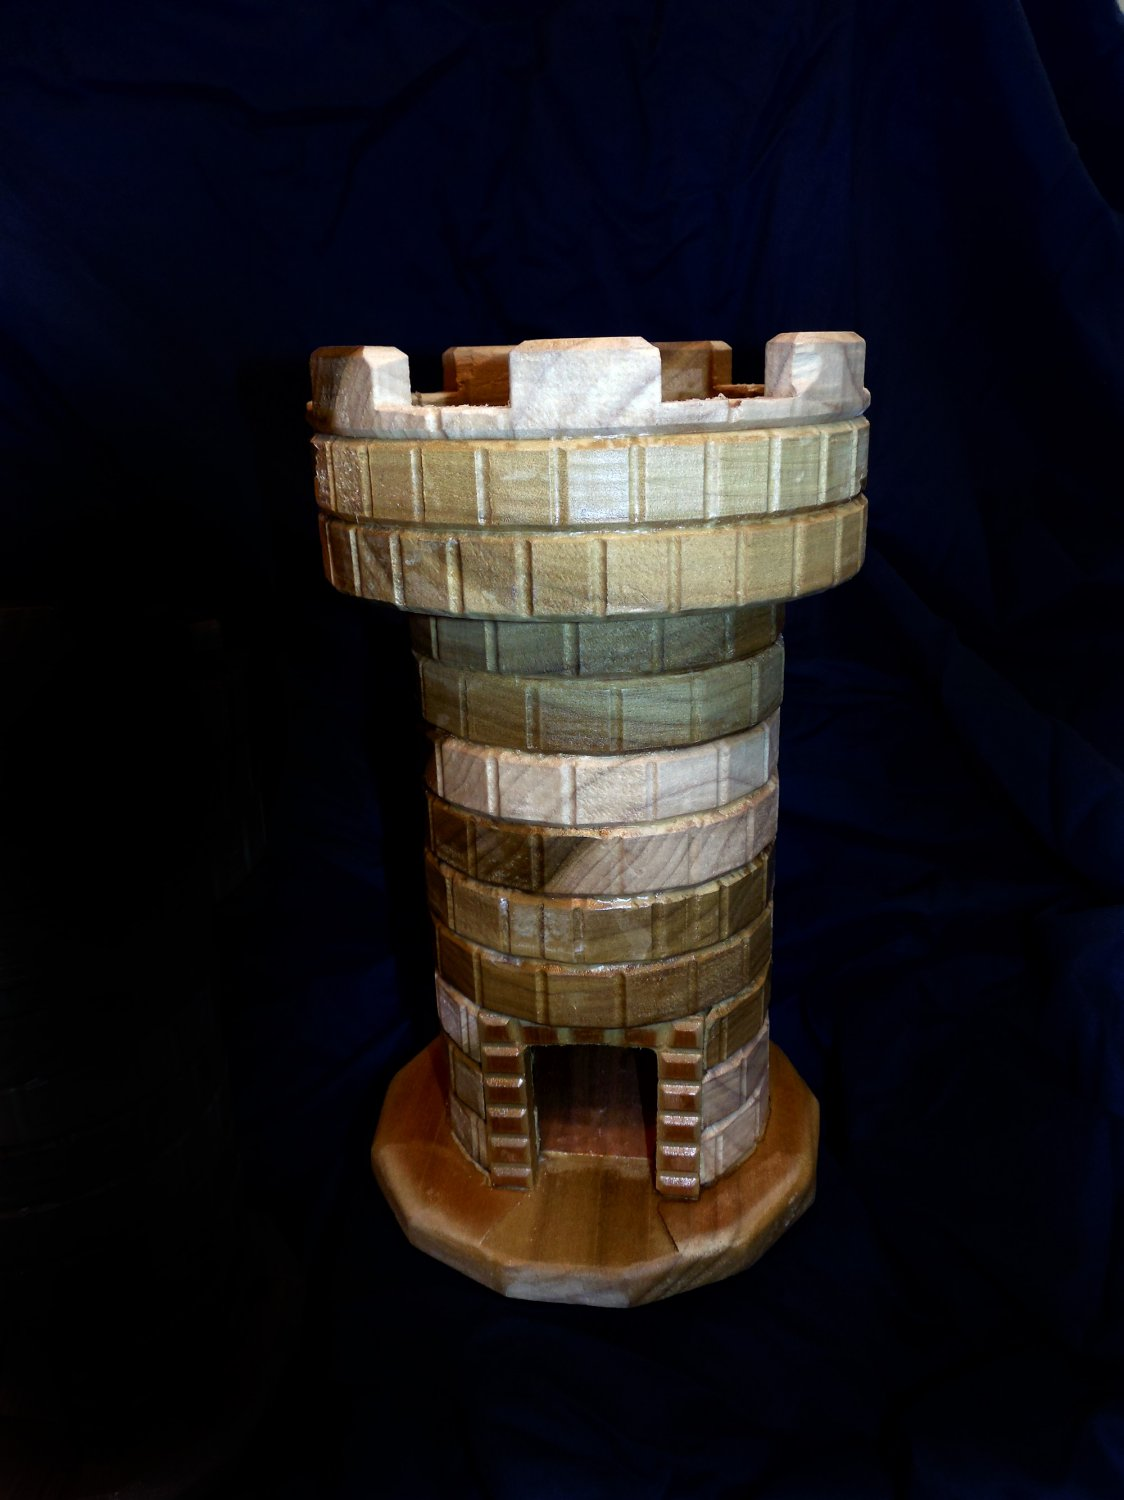 Handmade Wooden Dice Tower - Poplar with Lacquer finish